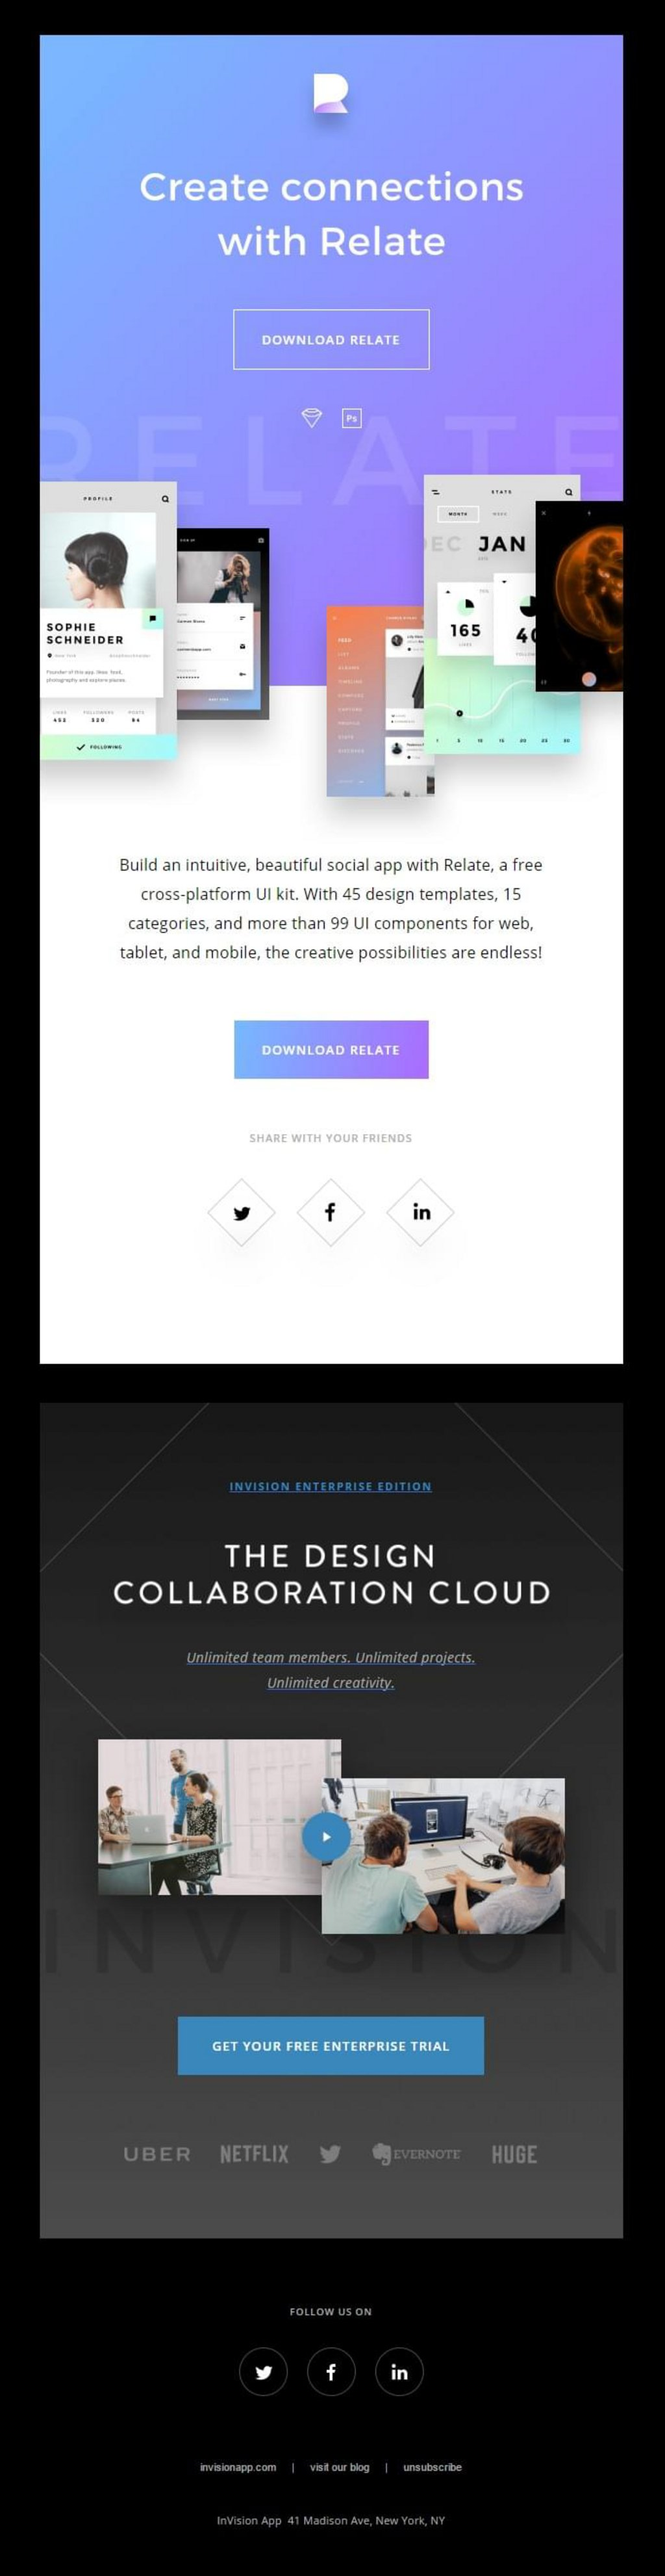 Relate ui kit invision email.jpg